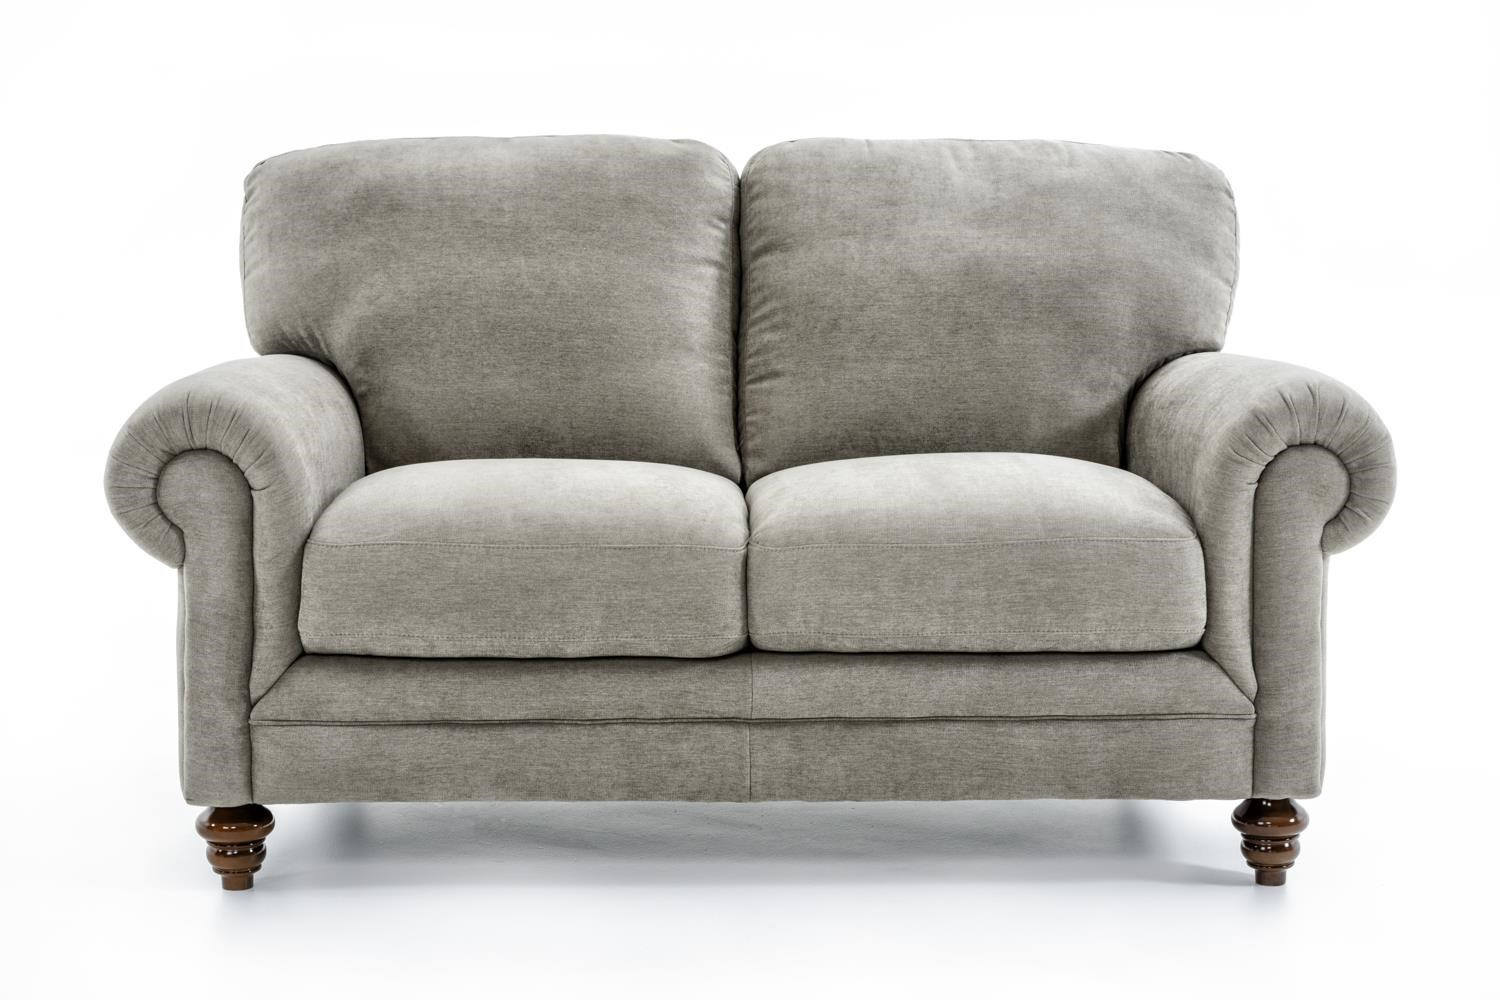 Natuzzi Editions A855 Love Seat - Item Number: A855-005 68-0030-05-09